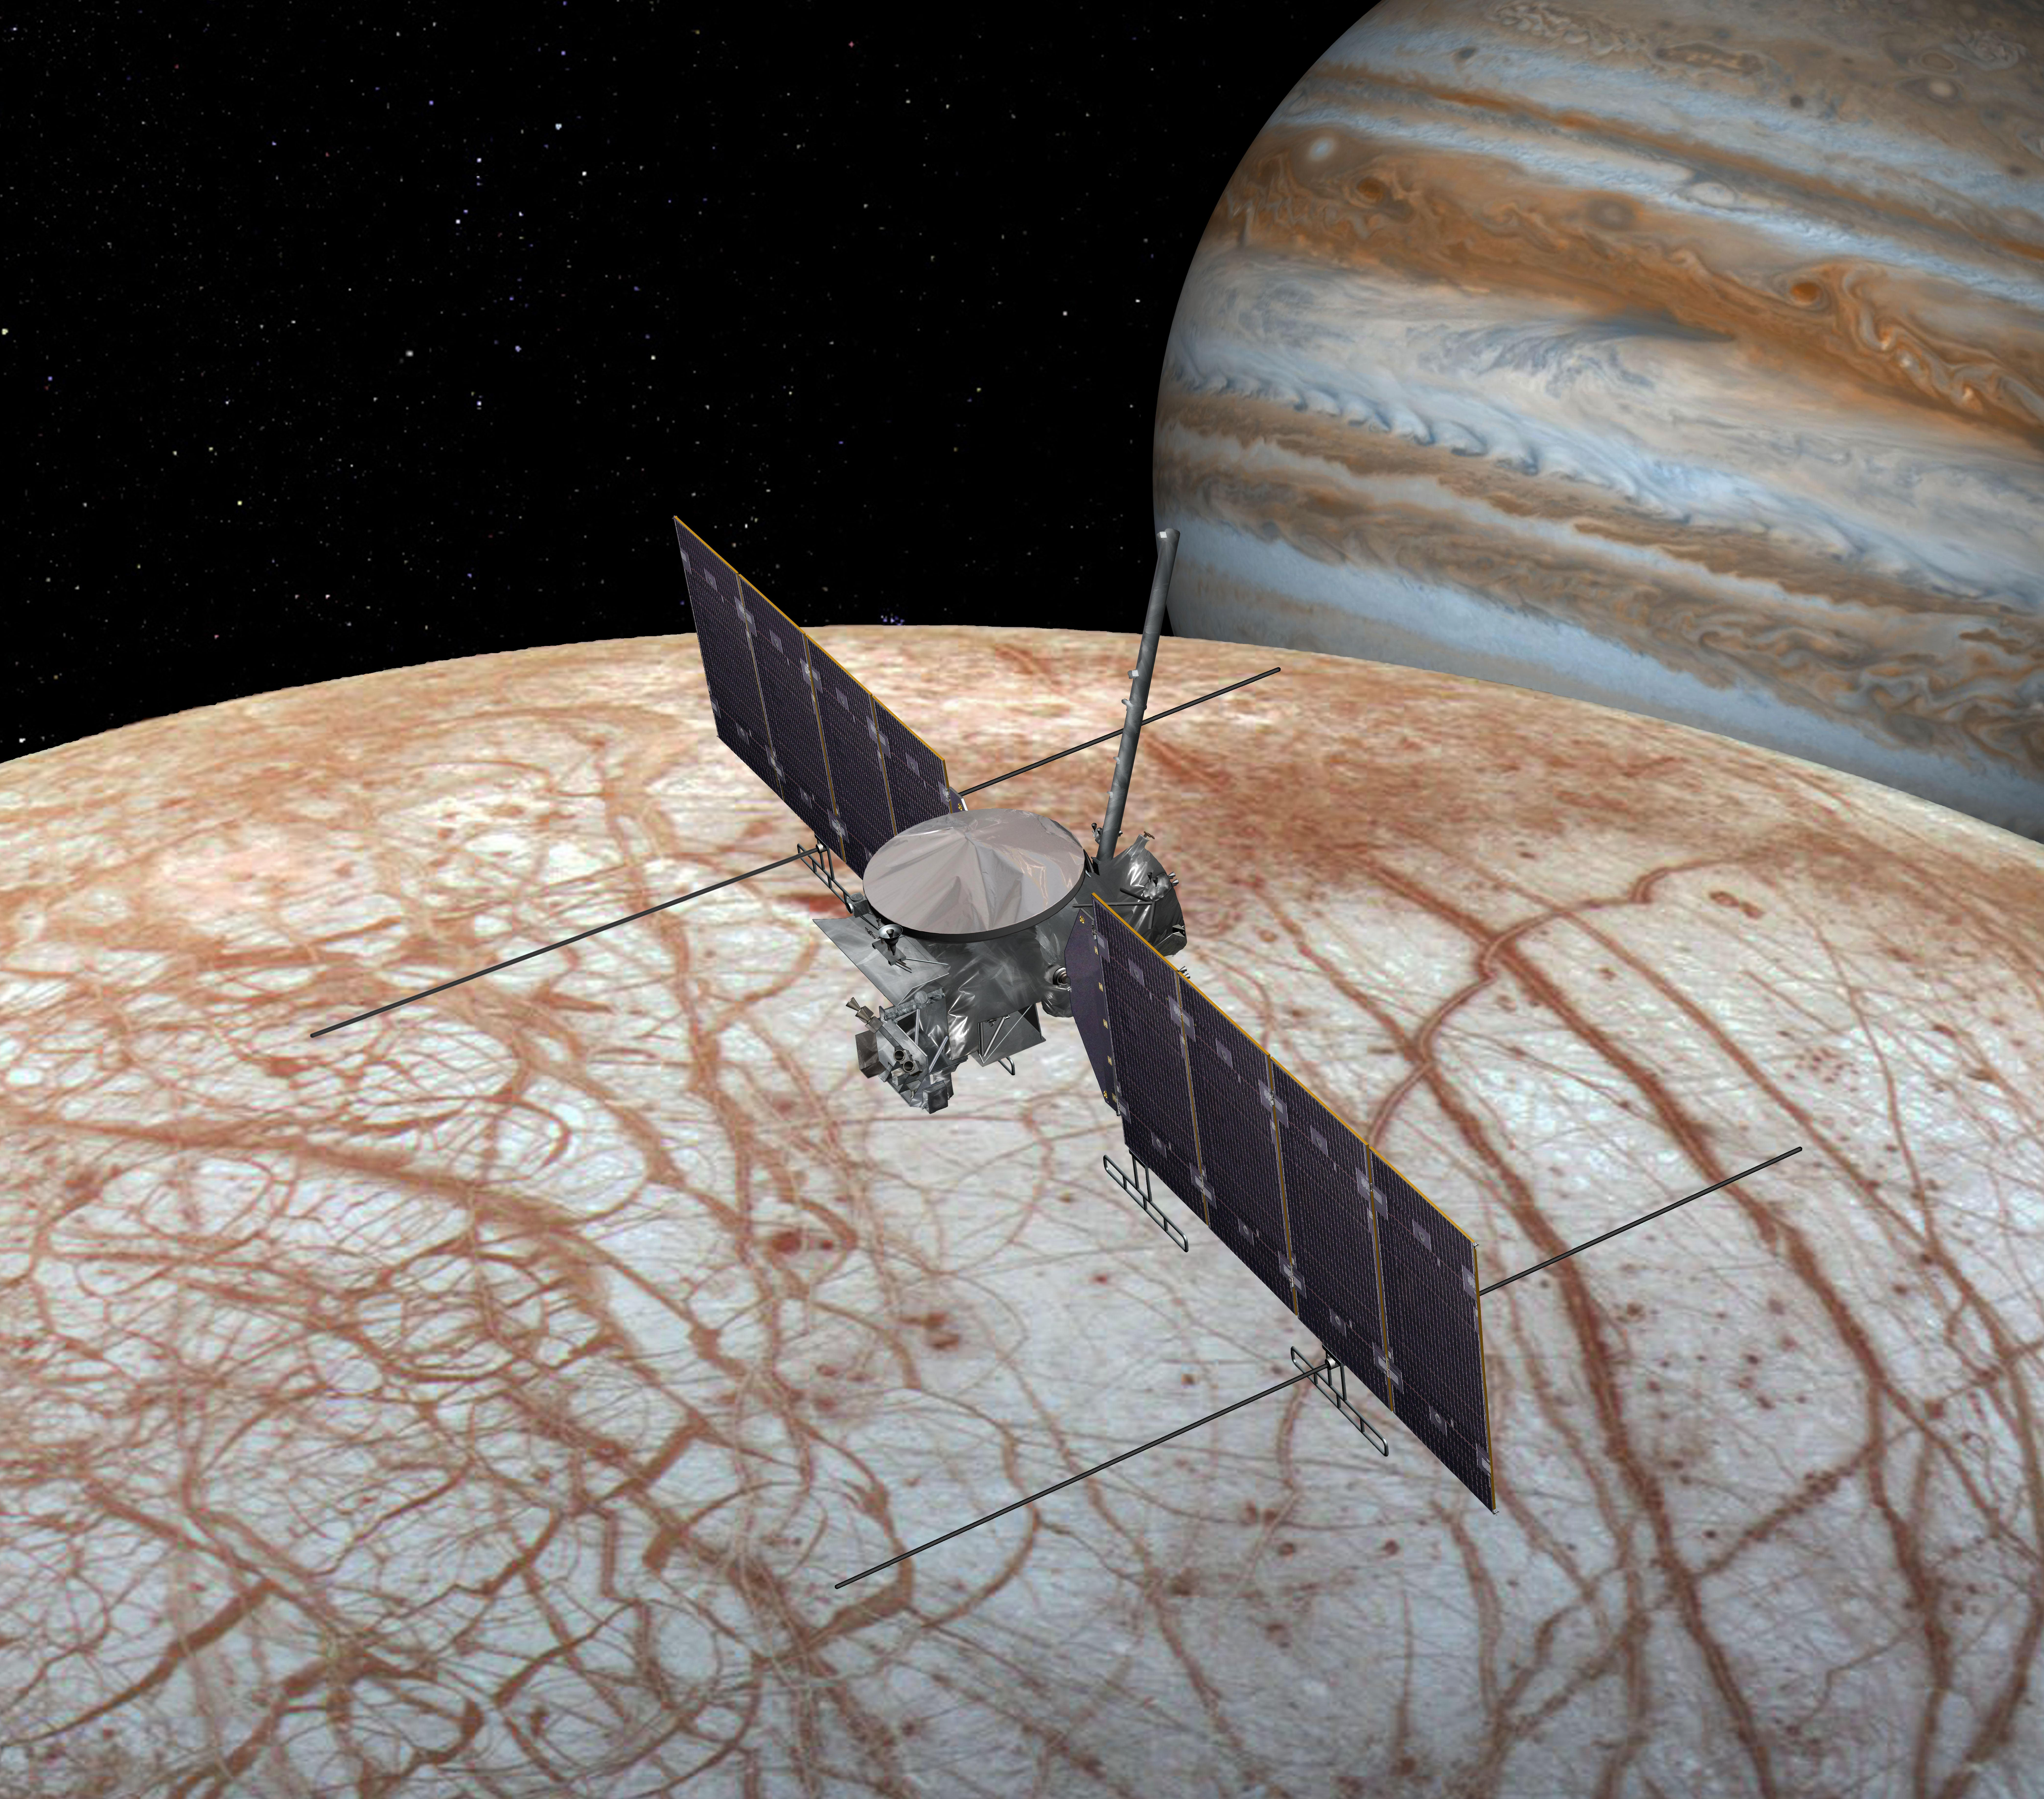 https://upload.wikimedia.org/wikipedia/commons/4/4d/Europa_Mission_Spacecraft_-_Artist%27s_Rendering.jpg